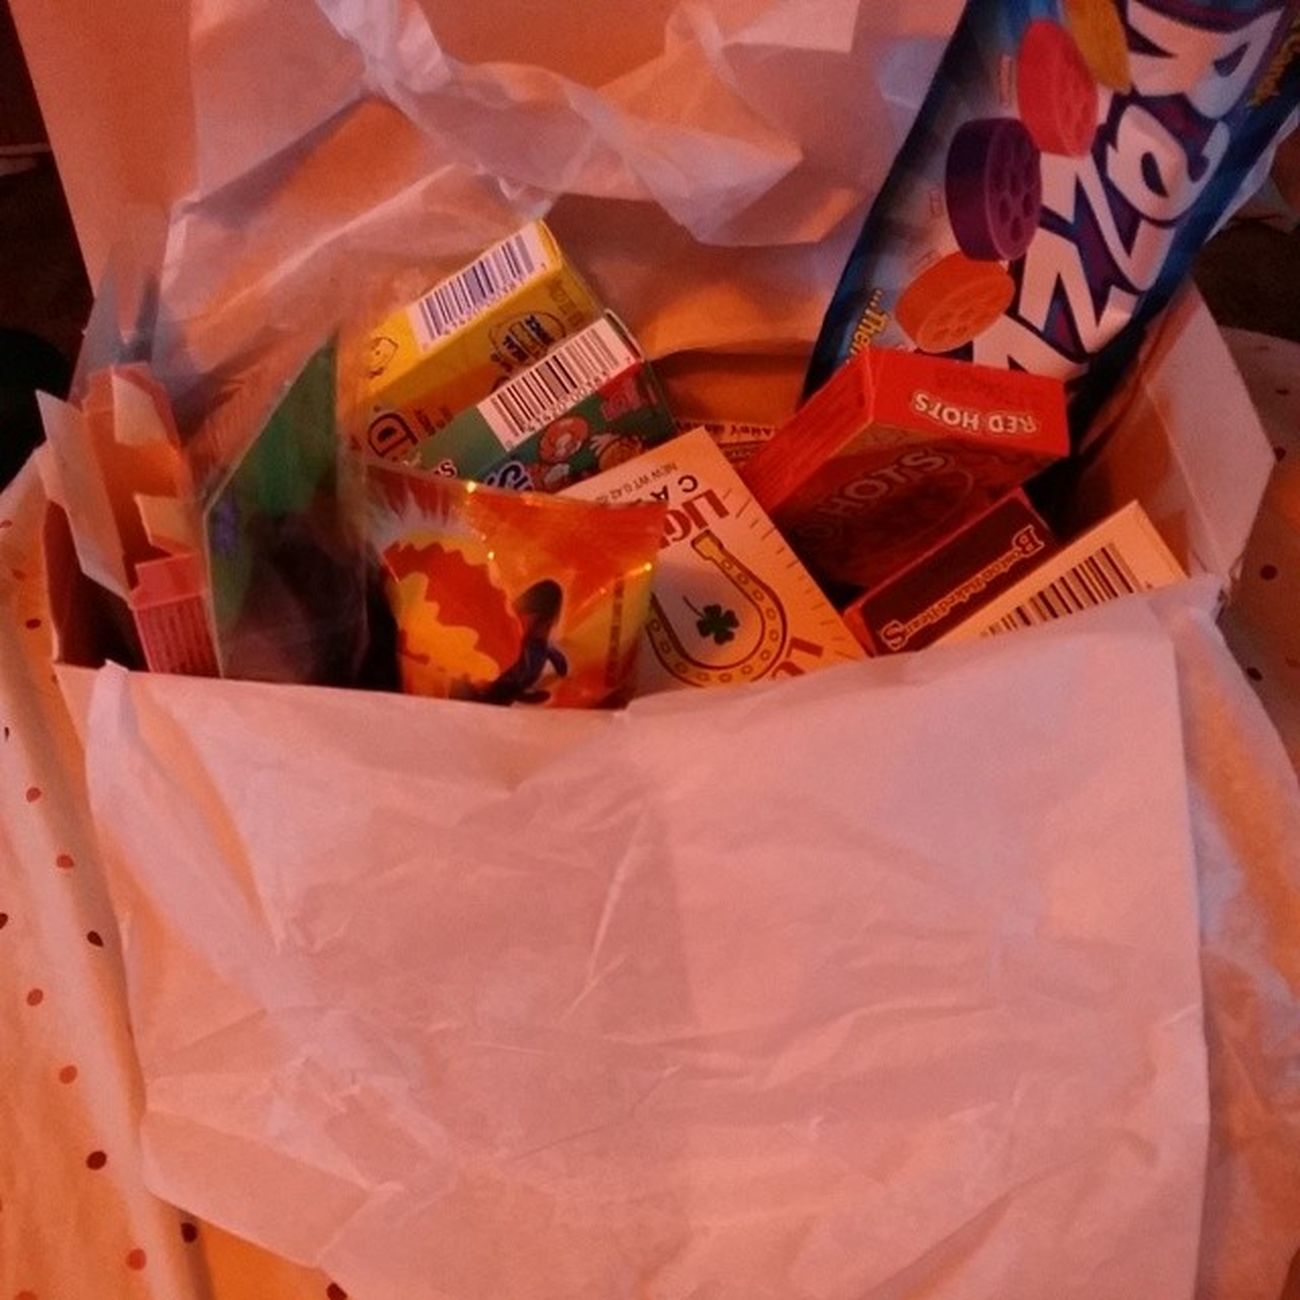 Who's got Themostawesomehusbandintheworld ? I do I do!! All the candy from when I was little Christmas